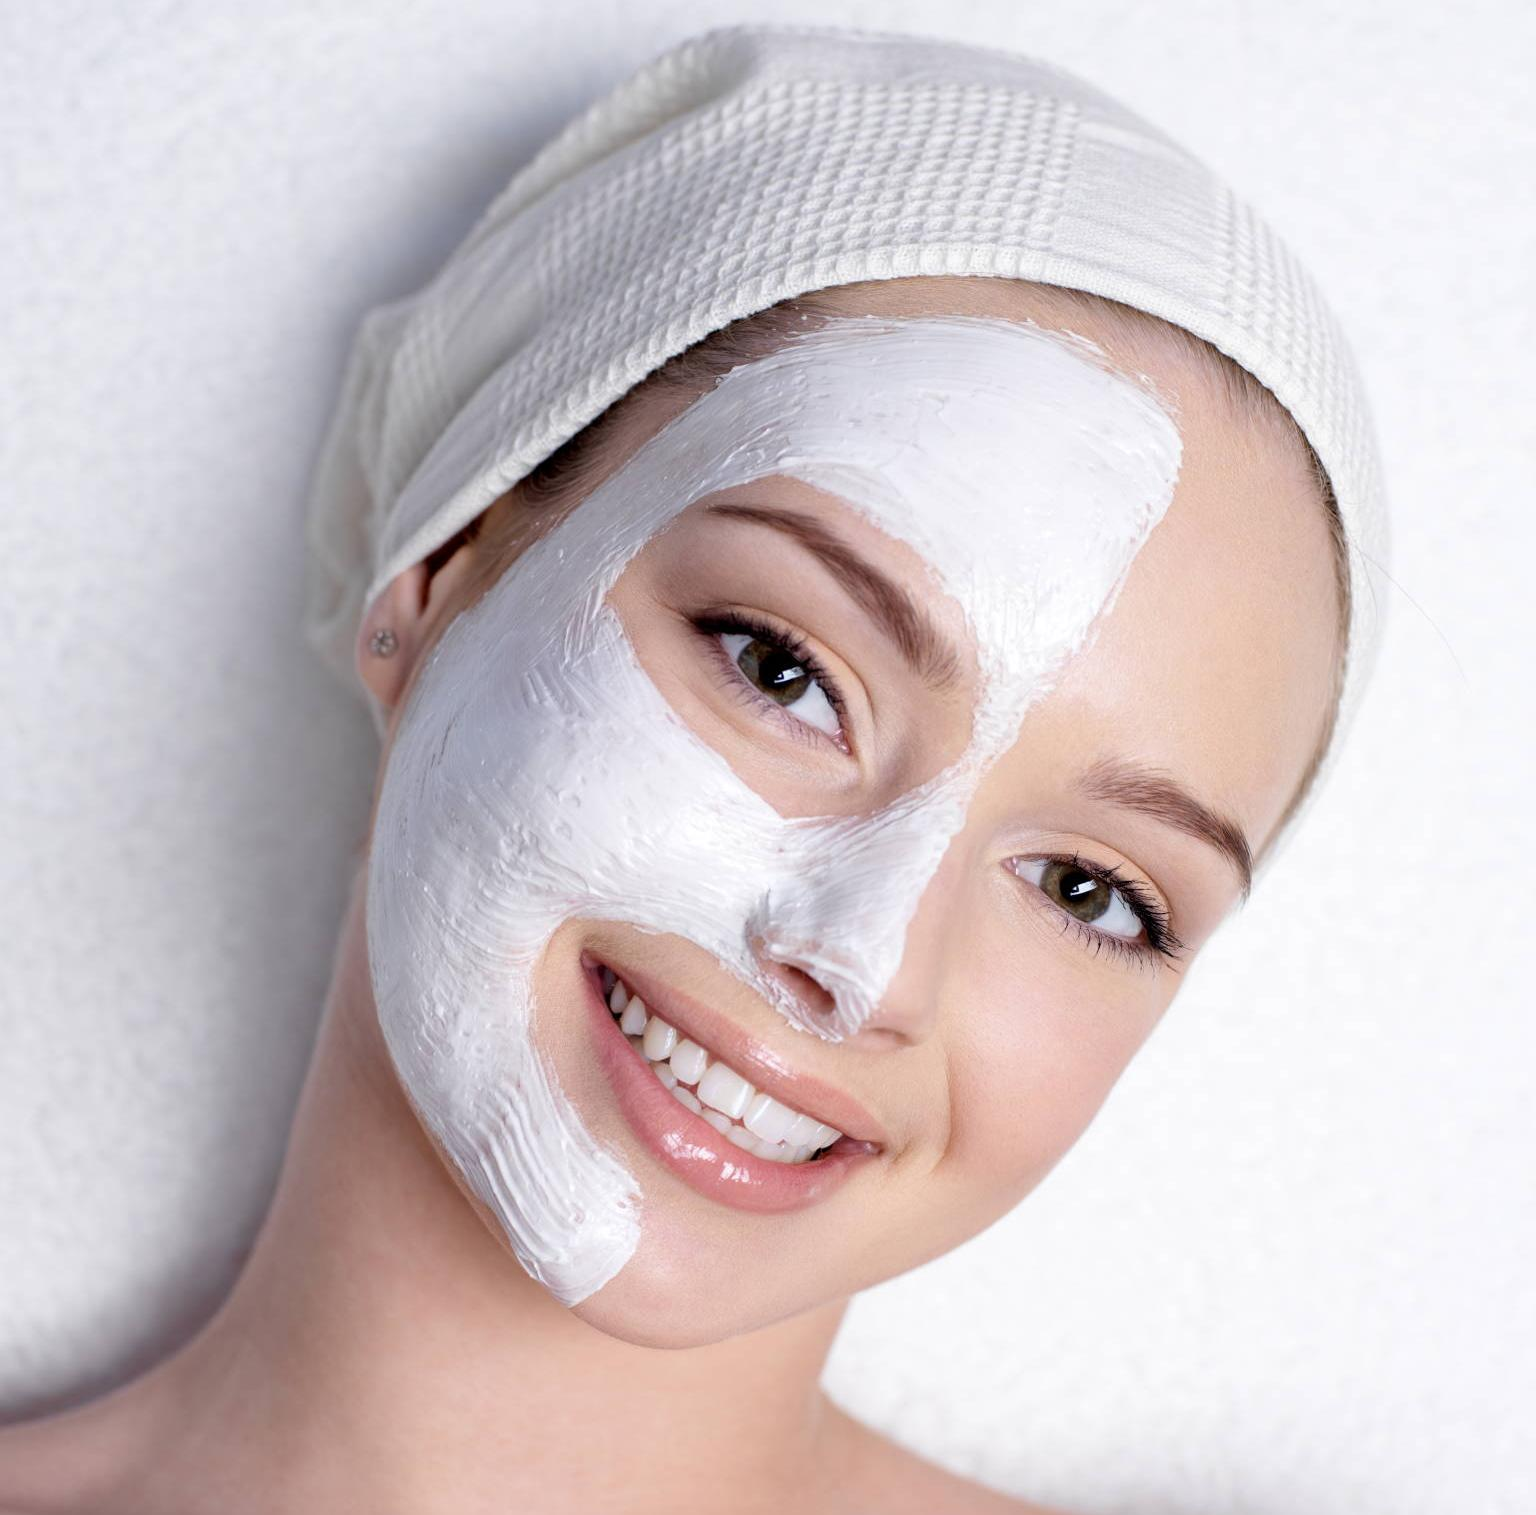 COMBINED SKIN CLEANING